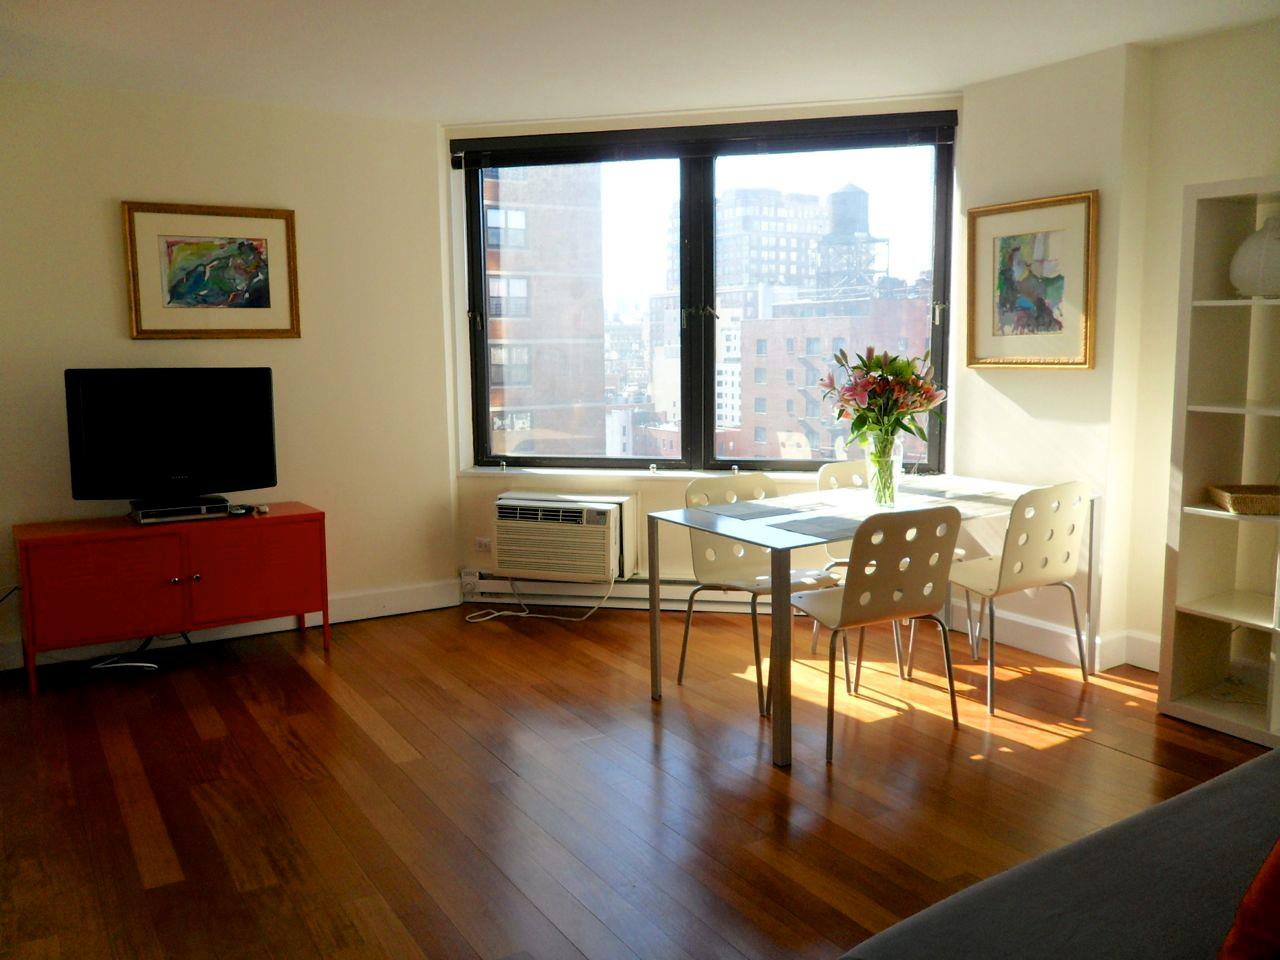 RUPPERT YORKVILLE TOWERS CONDO, 1601 Third Avenue, 16C - Upper East Side, New York